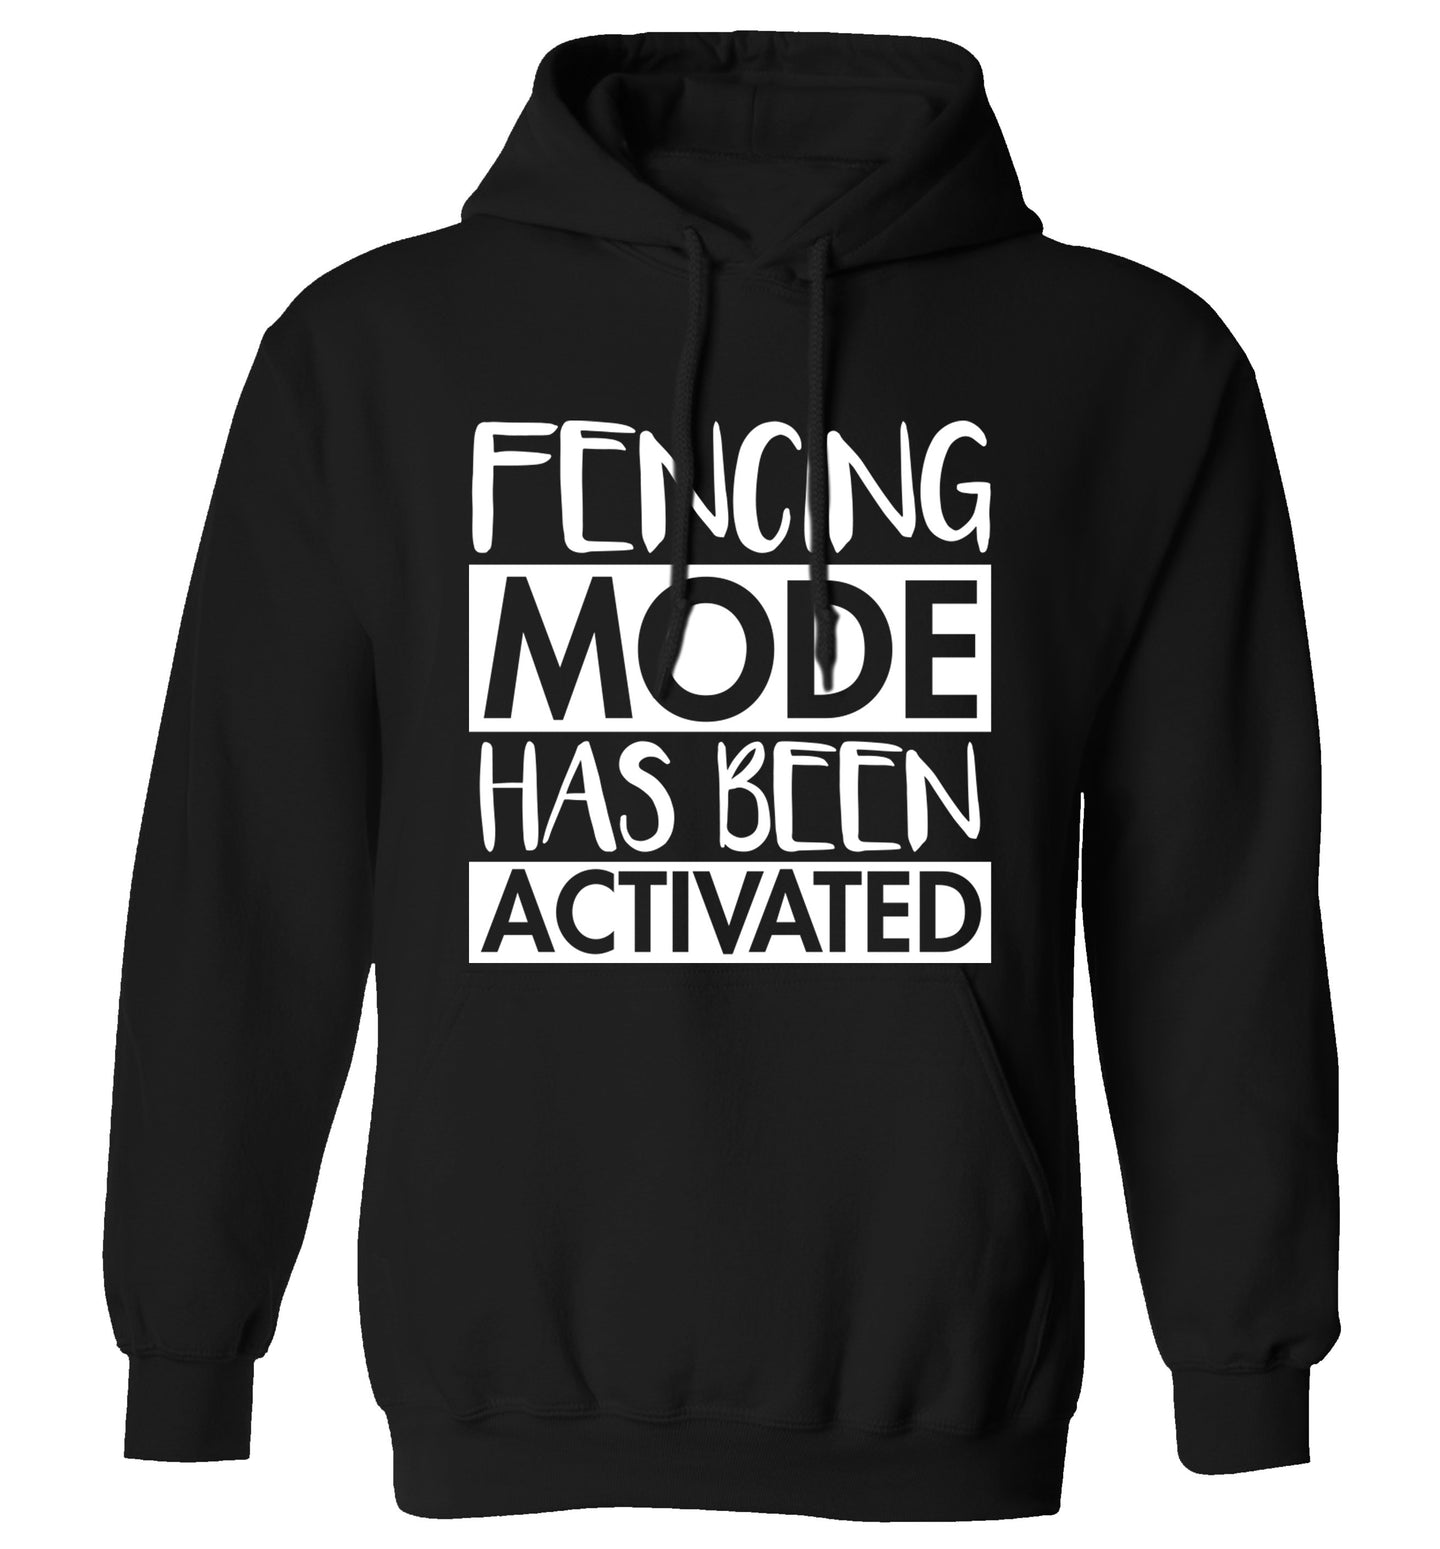 Fencing mode activated adults unisex black hoodie 2XL